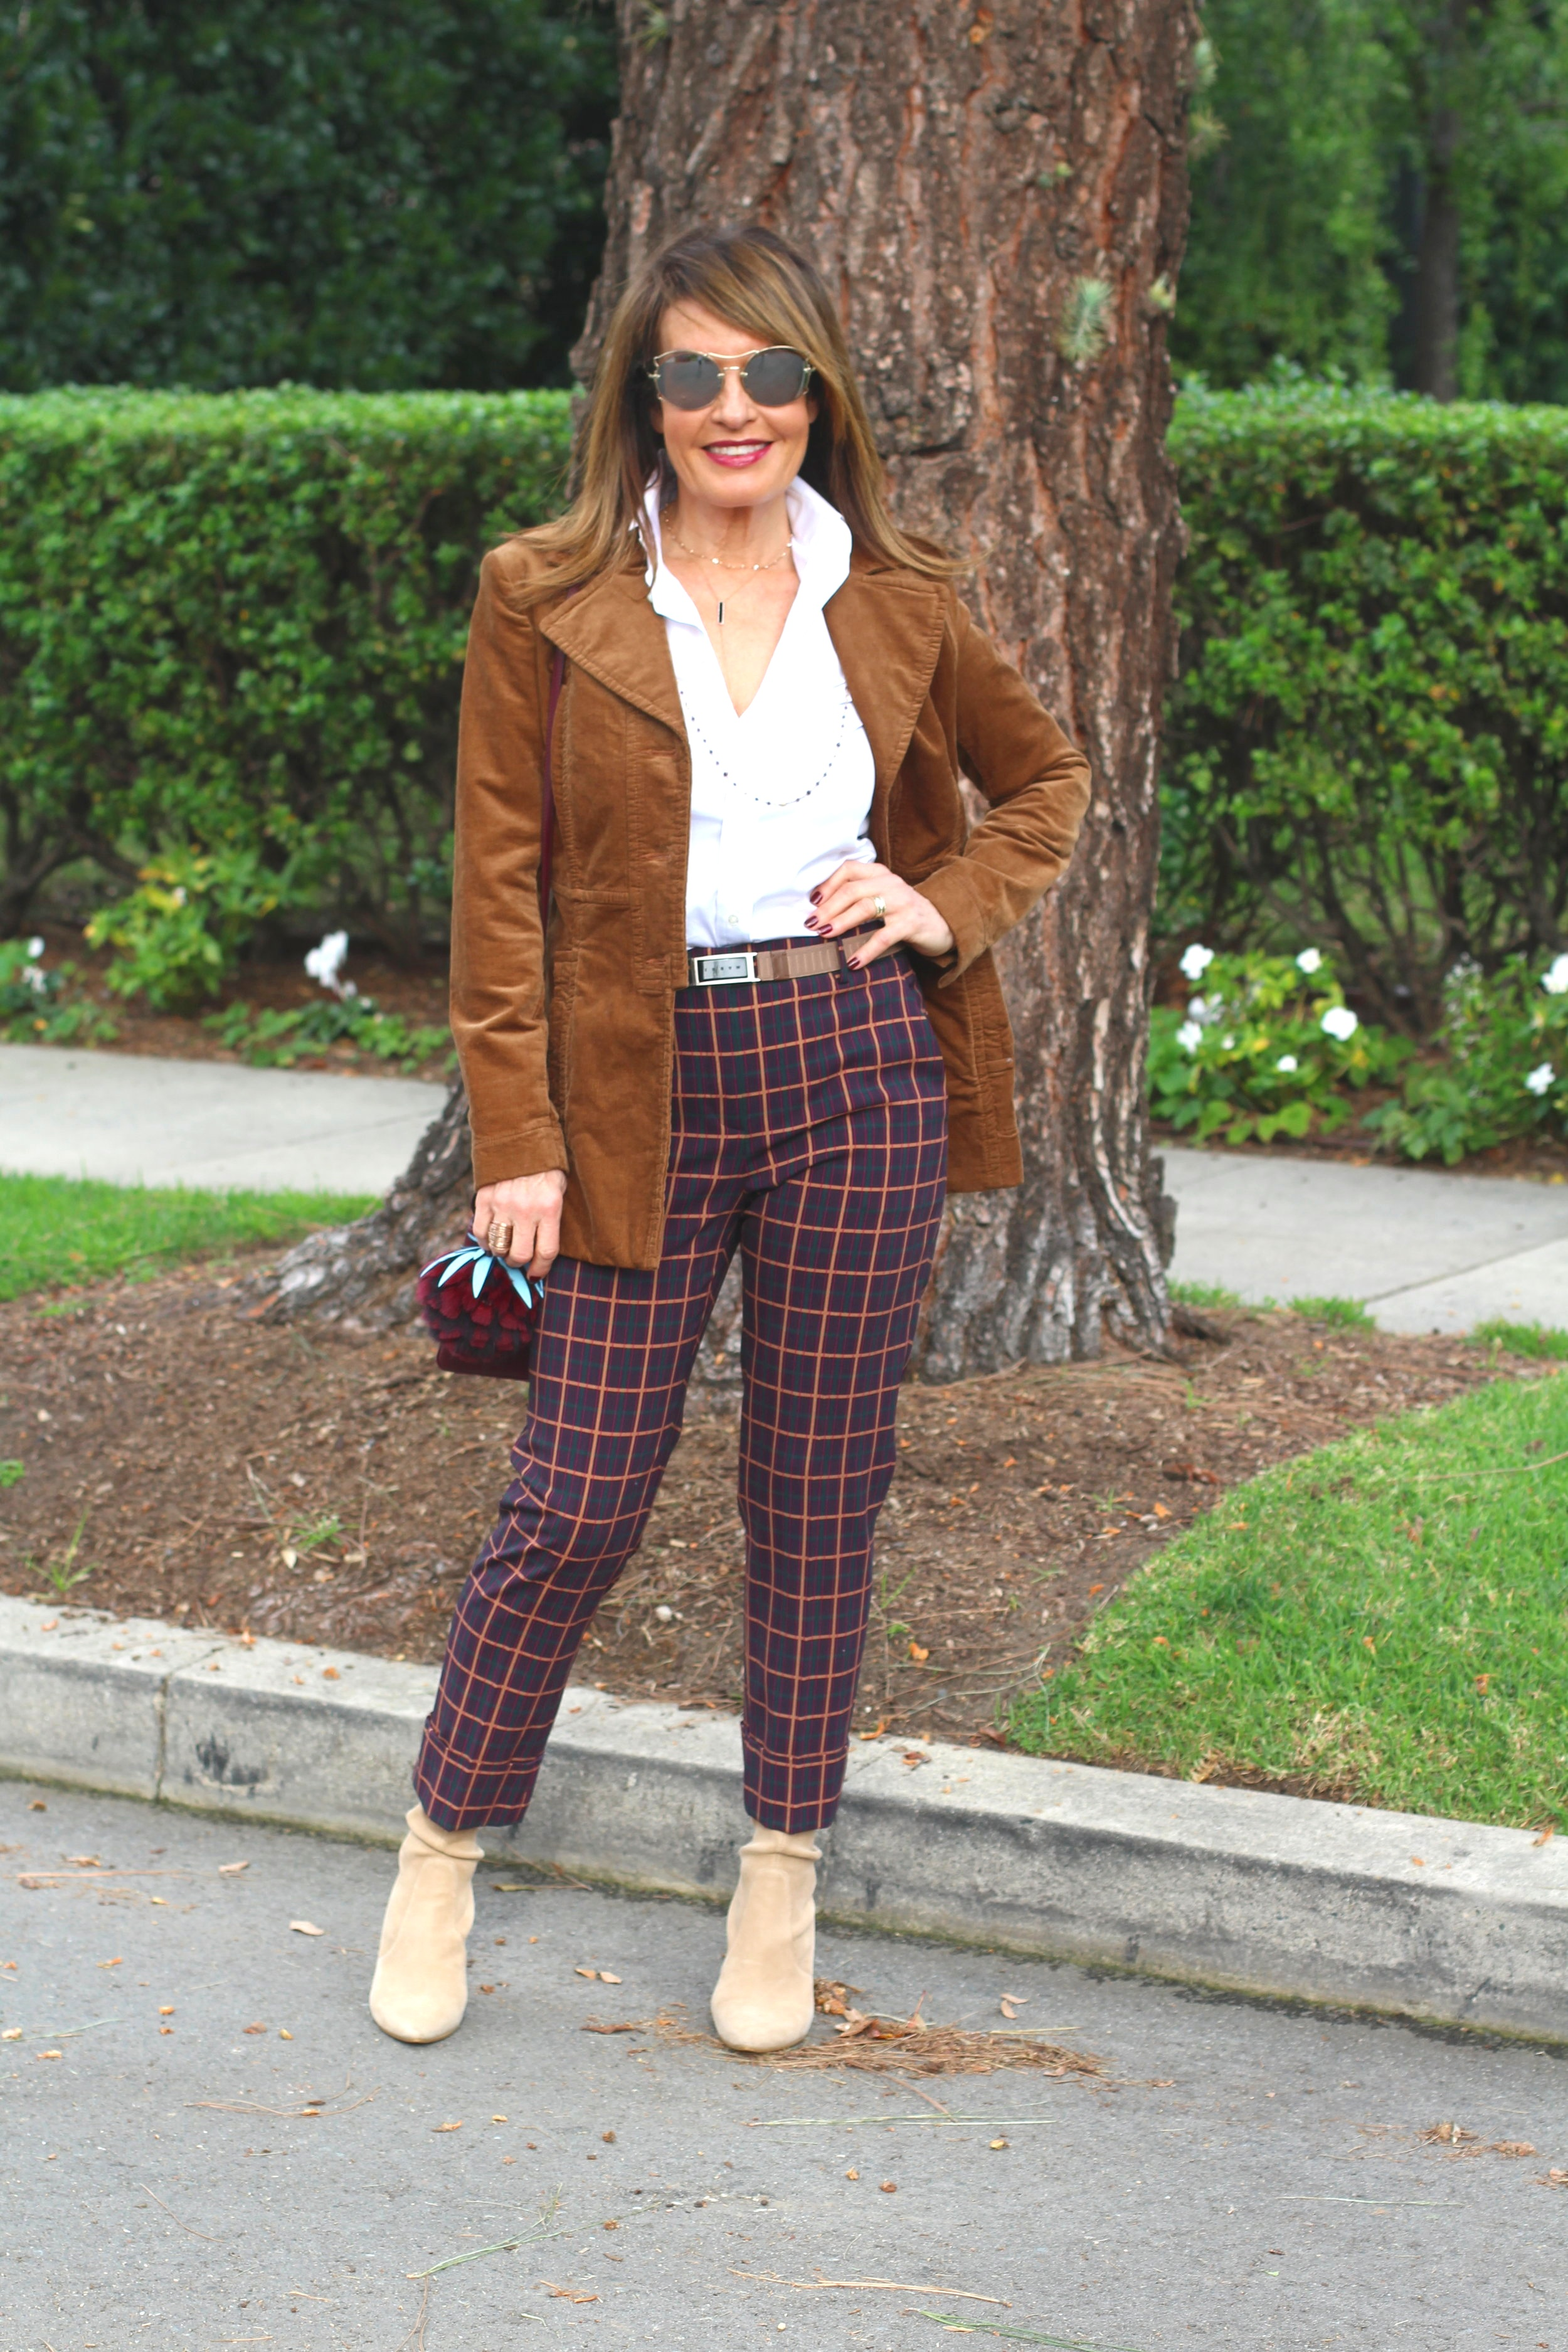 Theory pants   , Cabi jacket,    similar here    Ralph Lauren blouse    similar here   , Marni belt, Stuart Weitzman boots    similar here   ,  Fendi handbag and charm, Miu Miu sunglasses,    Robin Terman necklaces and bracelets   ,    Anne Sisteron choker.